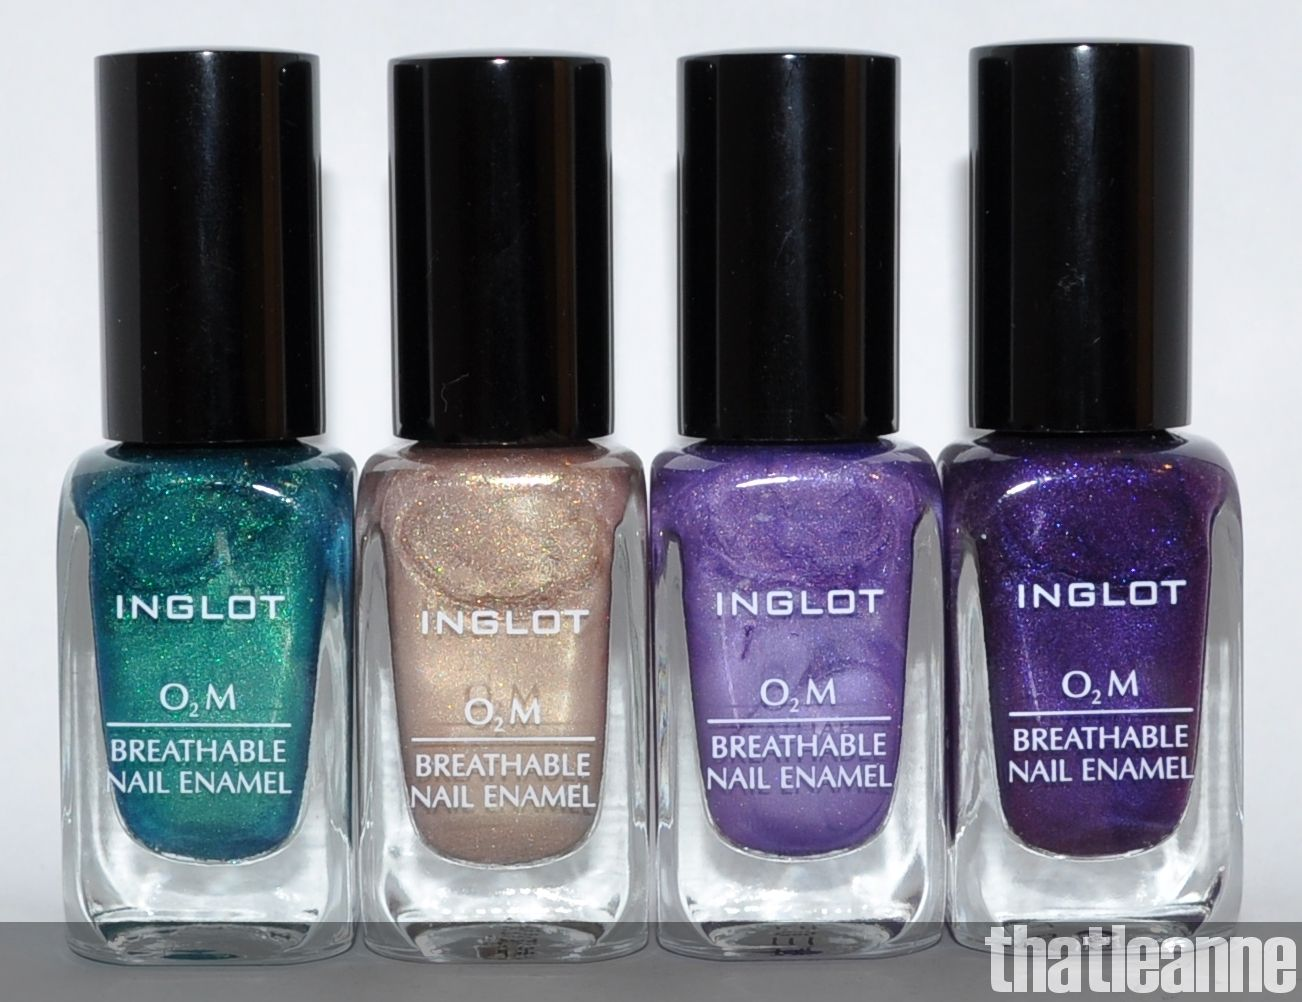 O2M breathable nail polish by Inglot. Allows water and air to reach ...